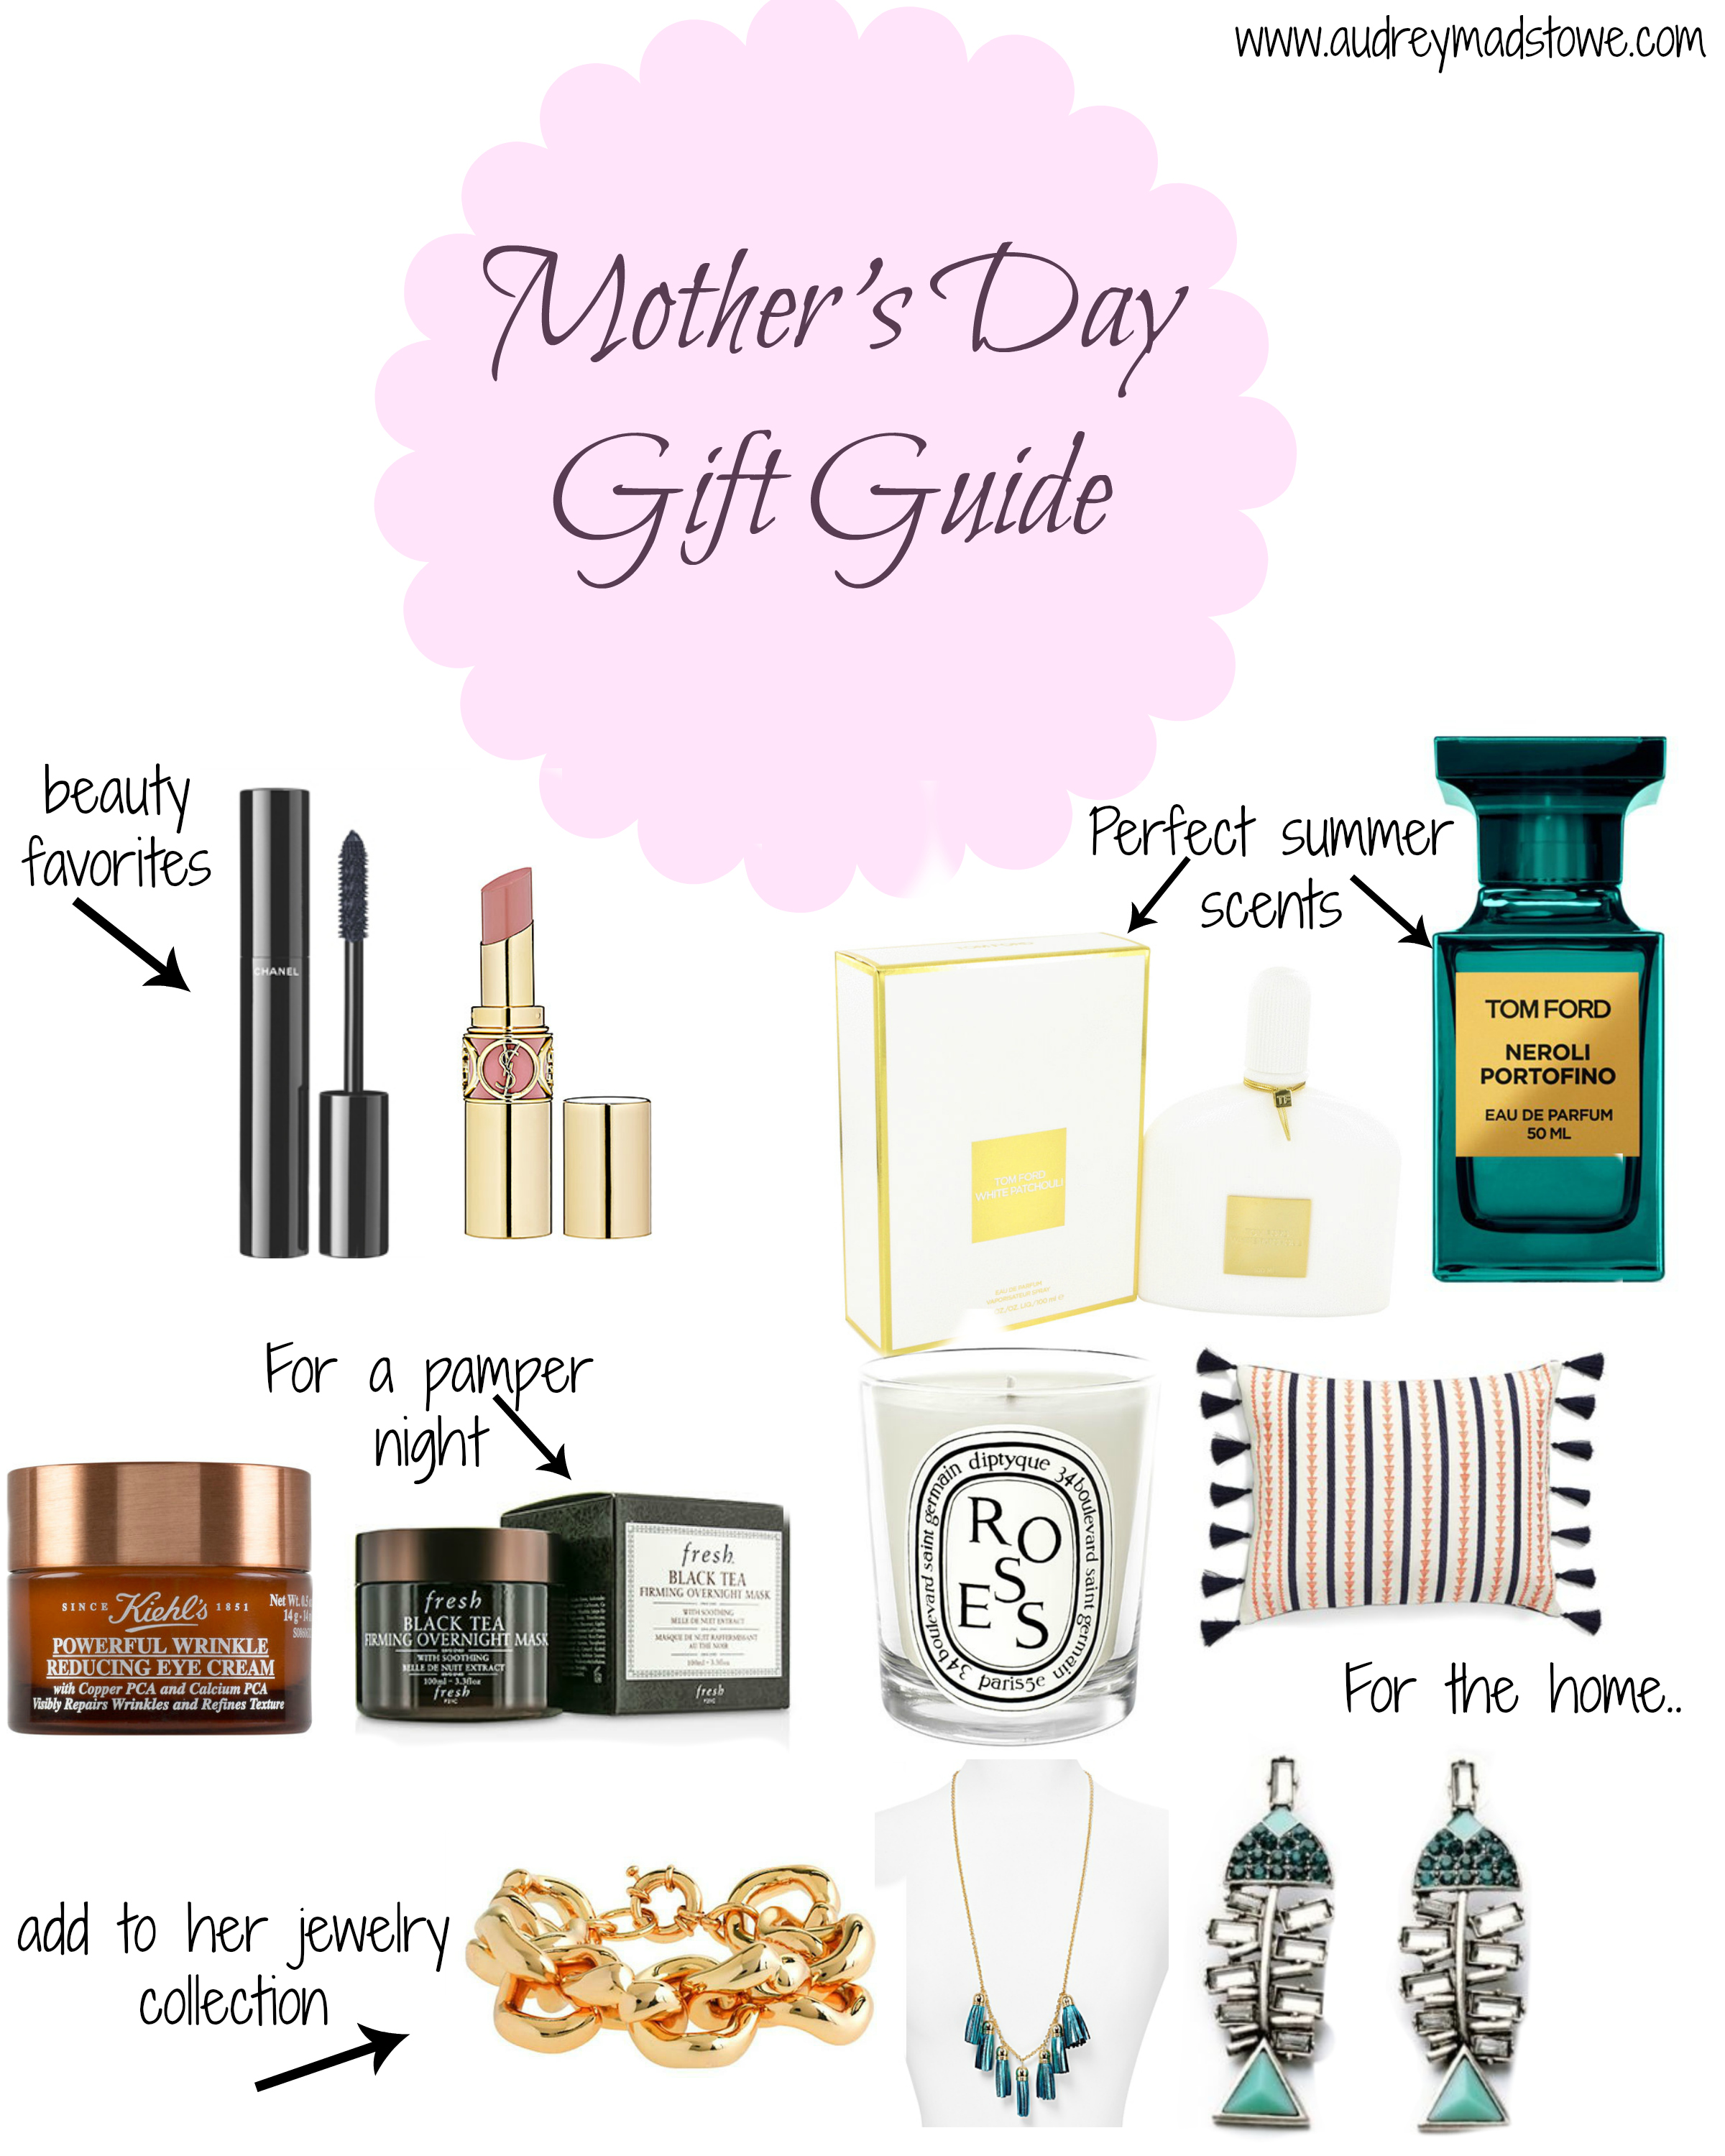 mother's day gift guide for 2016 beauty jewelry and home decor